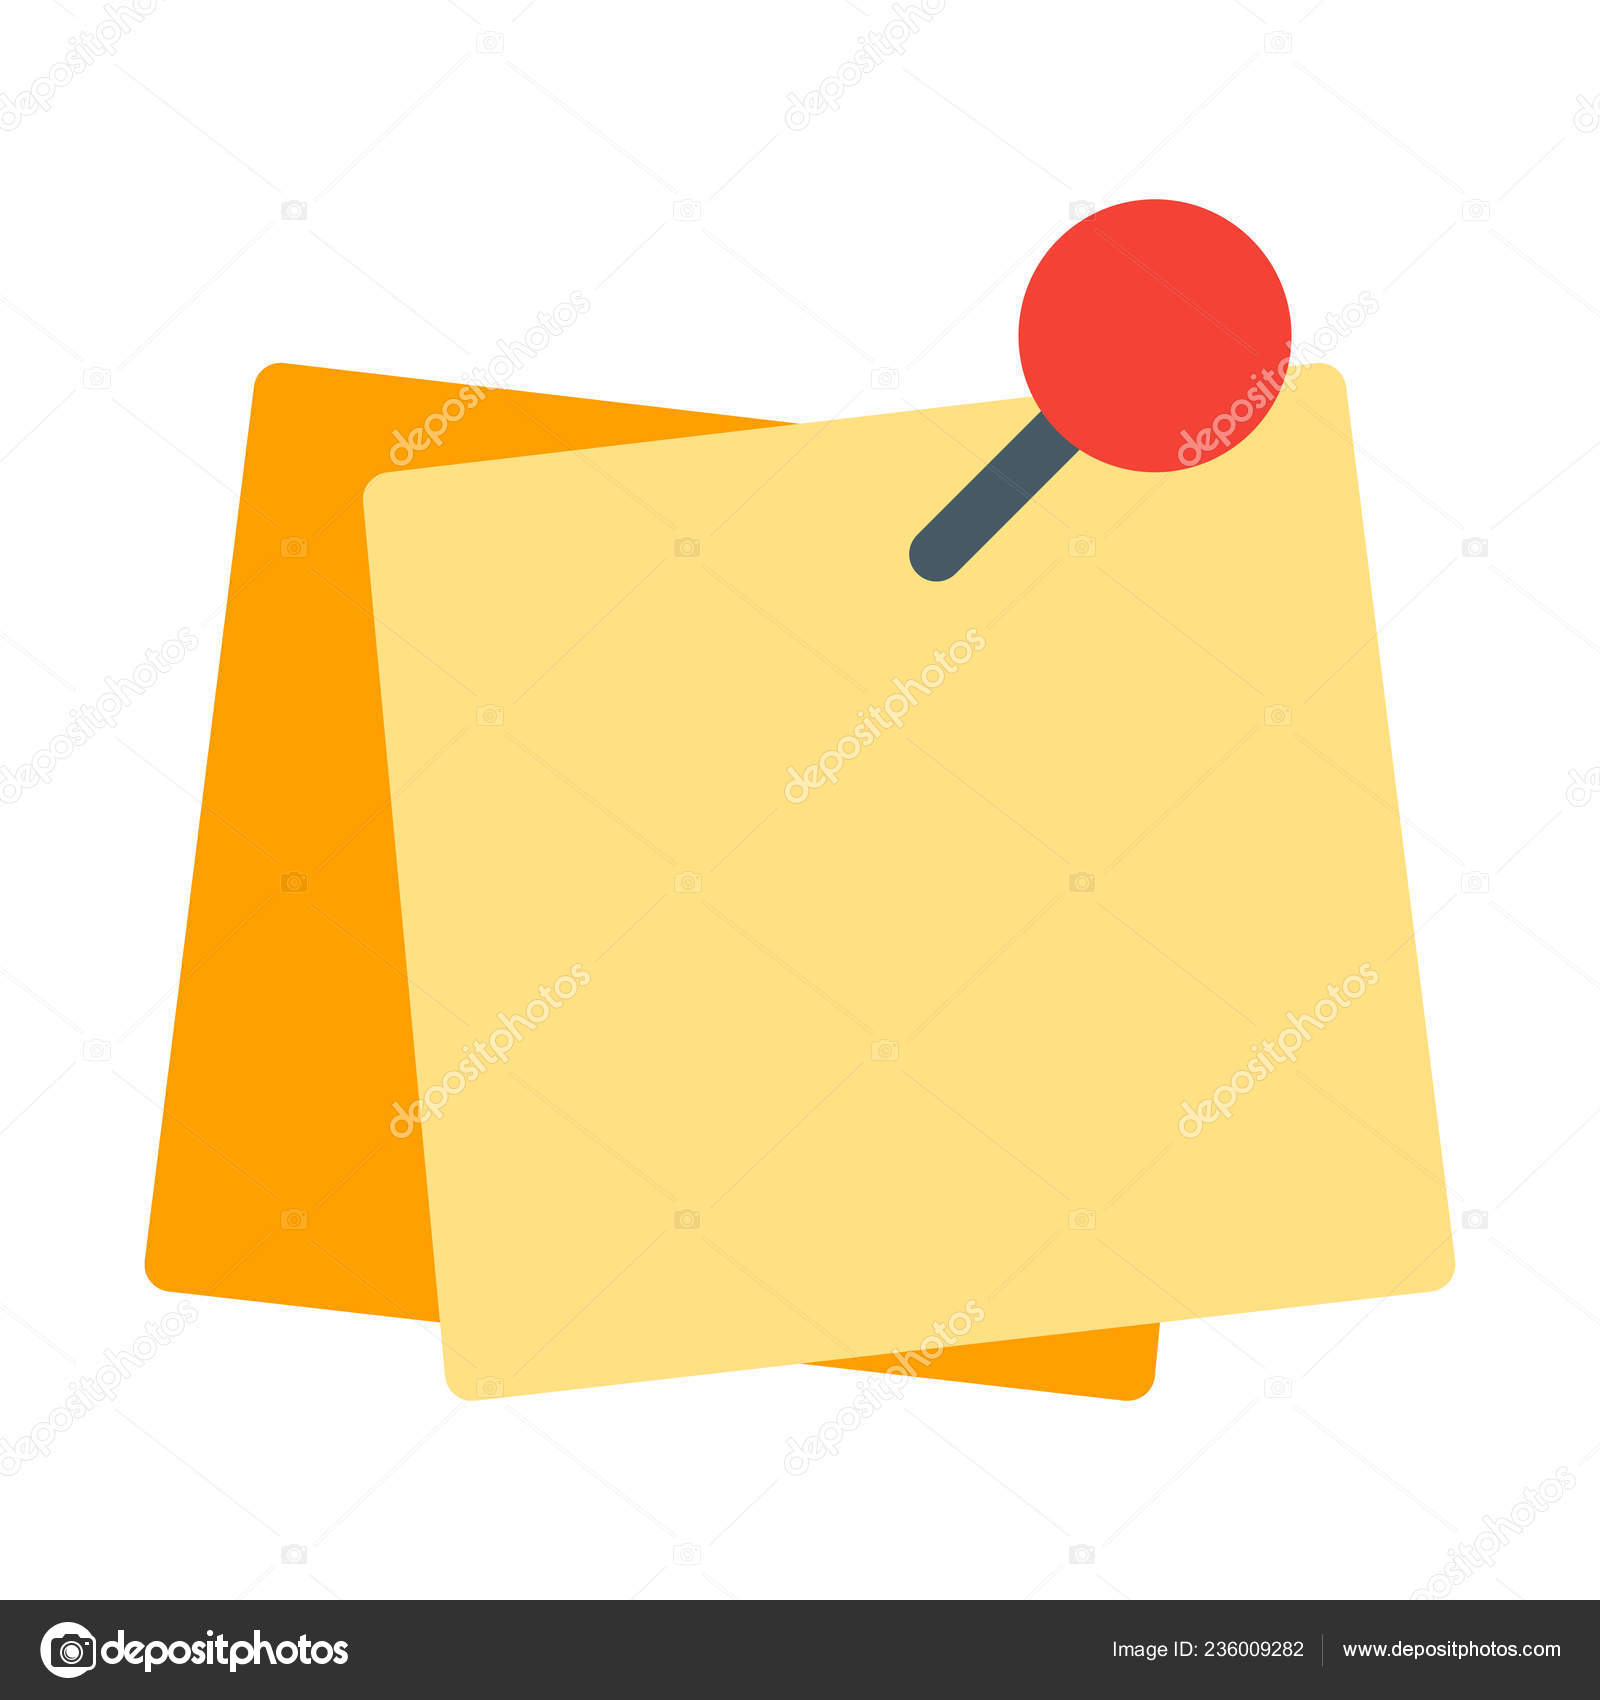 sticky paper reminder icon simple vector illustration stock vector c get4net 236009282 https depositphotos com 236009282 stock illustration sticky paper reminder icon simple html